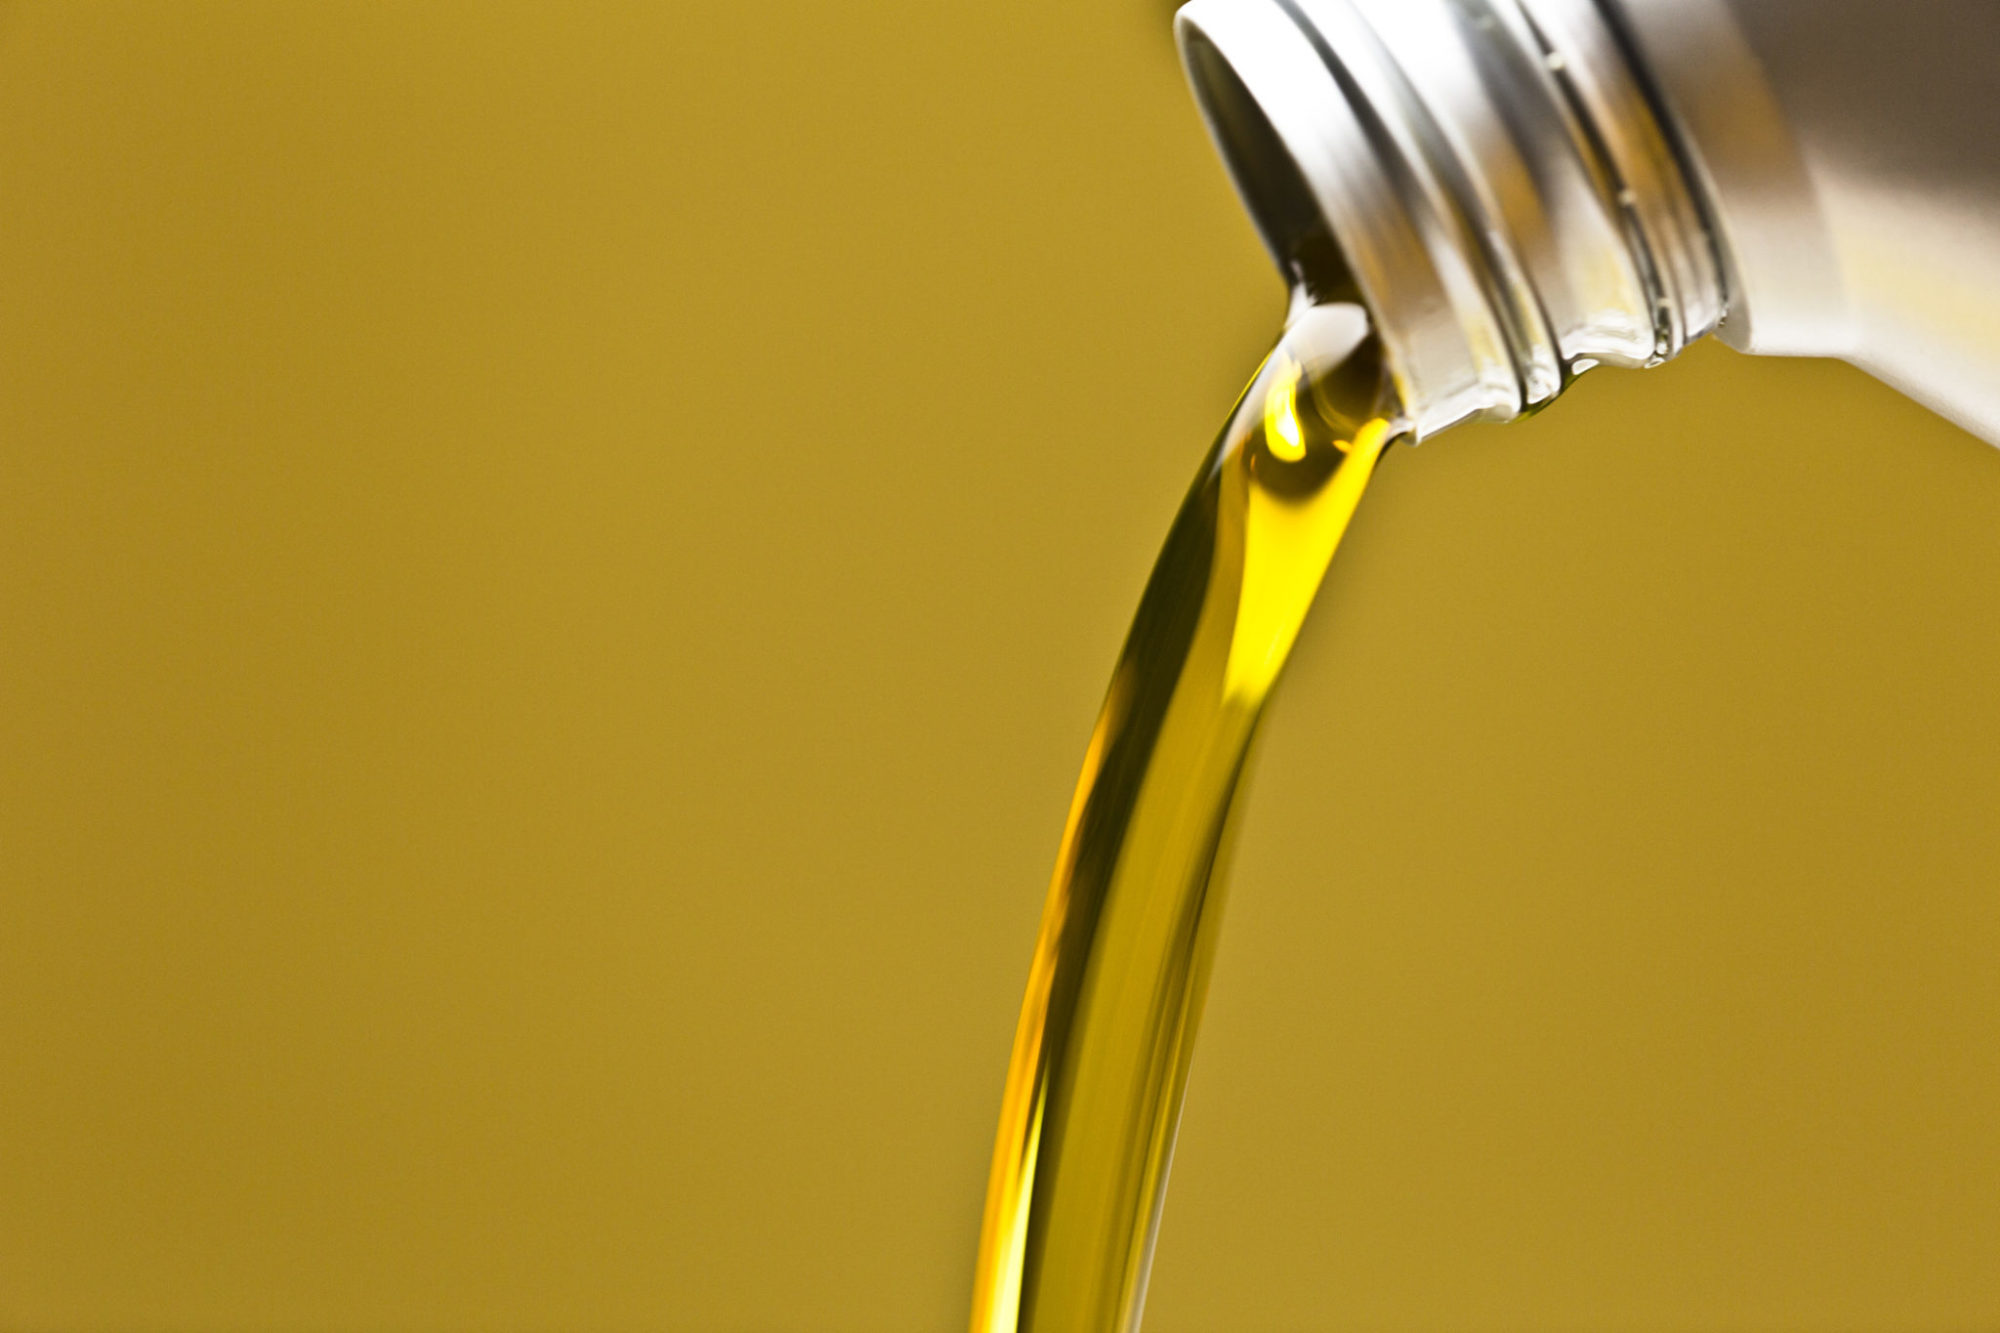 Understand the benefits of CK-4 and FA-4 oil | Today's